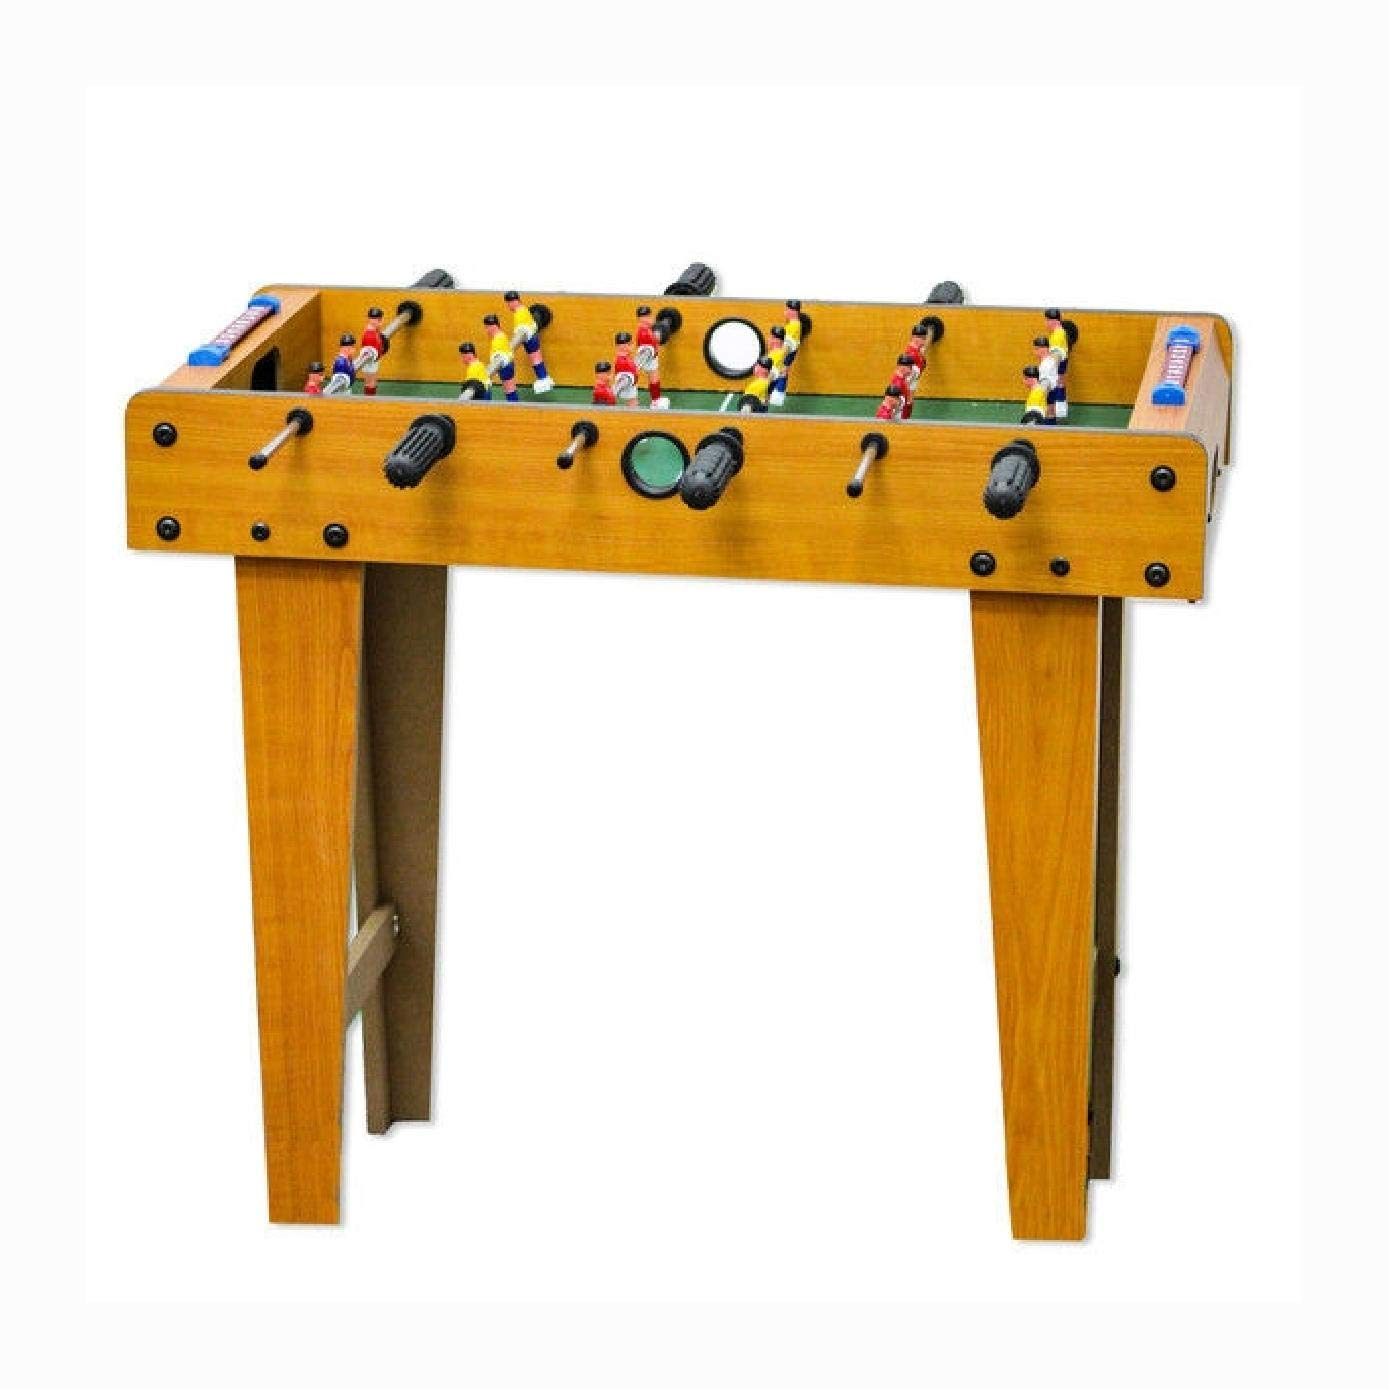 Wooden 27 - inch Foosball Table with Leg, Wooden 27-inch Foosball Table with Legs by HEATAPPLY